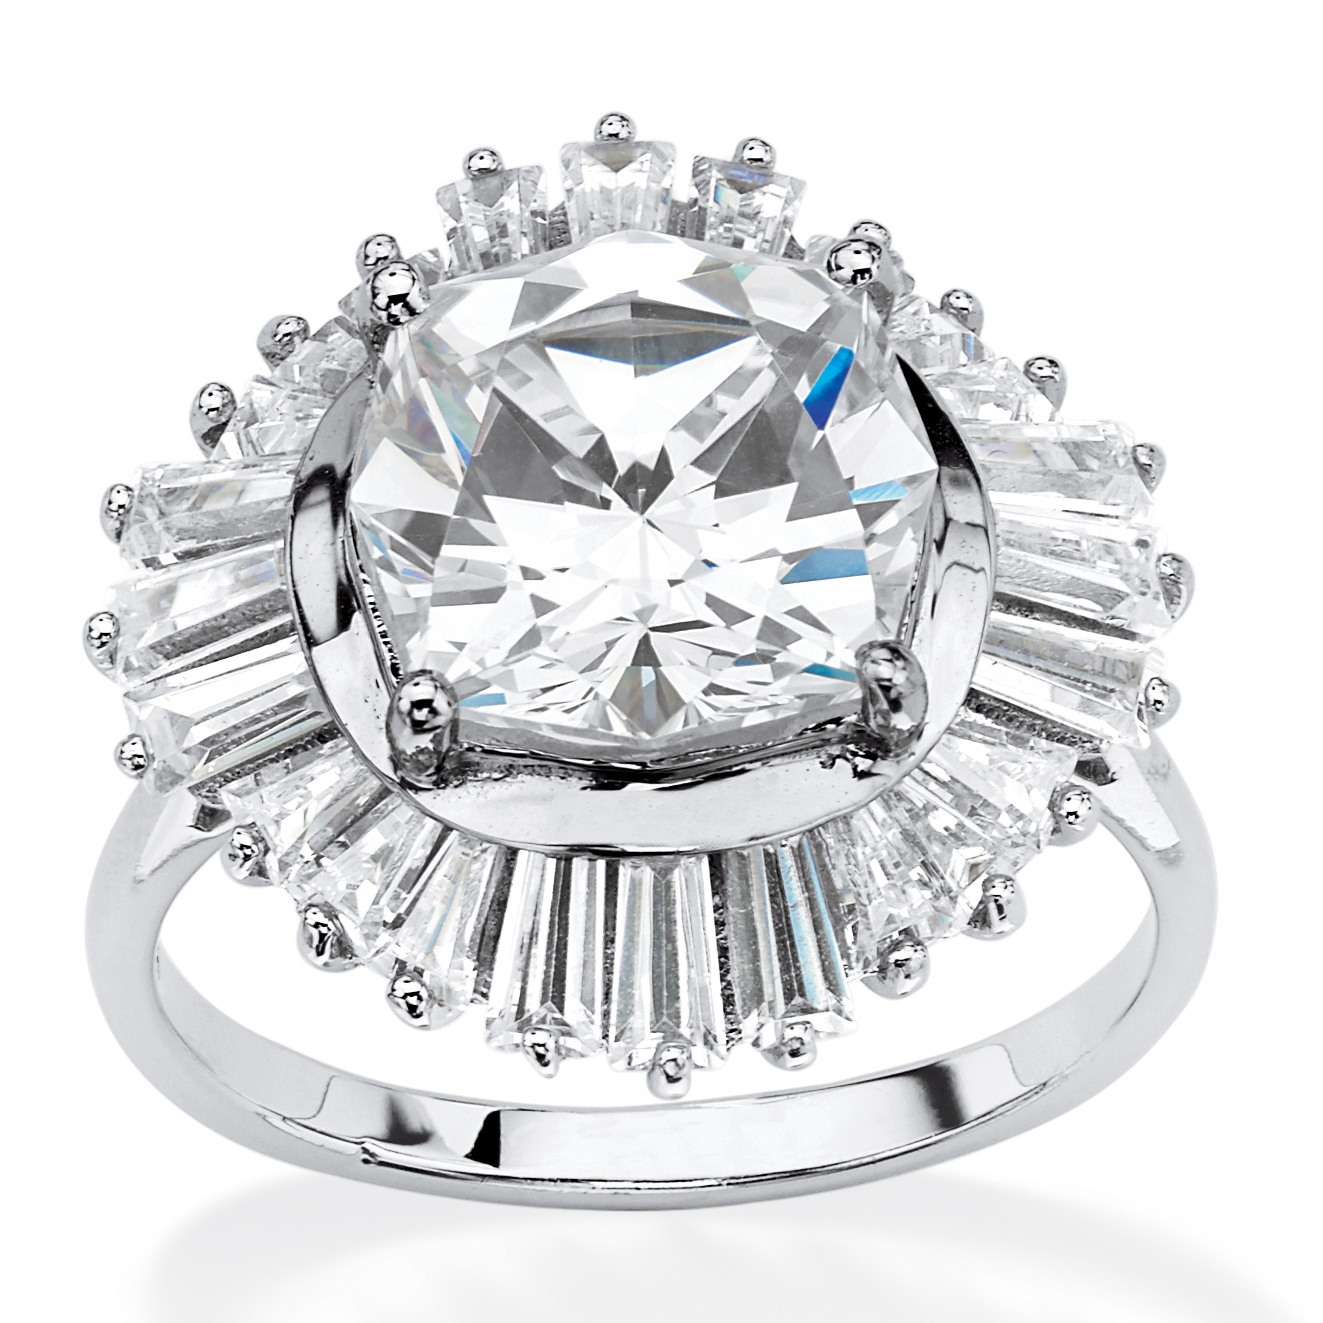 8.88 TCW Cushion-Cut Cubic Zirconia Vintage-Style Ring in Platinum Over .925 Sterling Silver